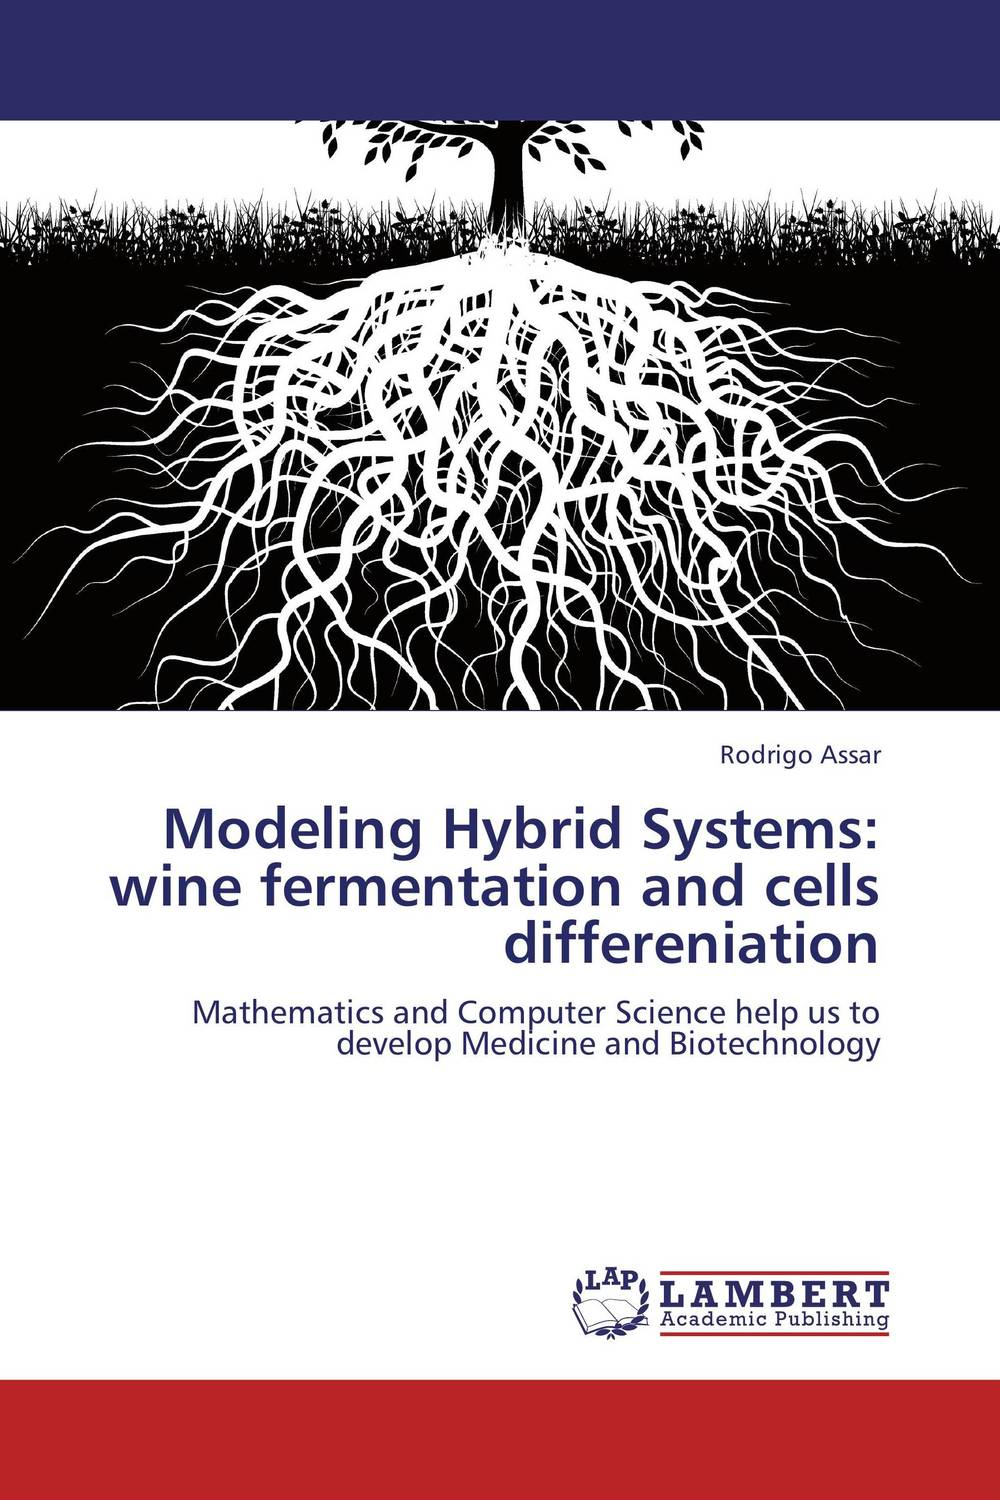 Modeling Hybrid Systems: wine fermentation and cells differeniation